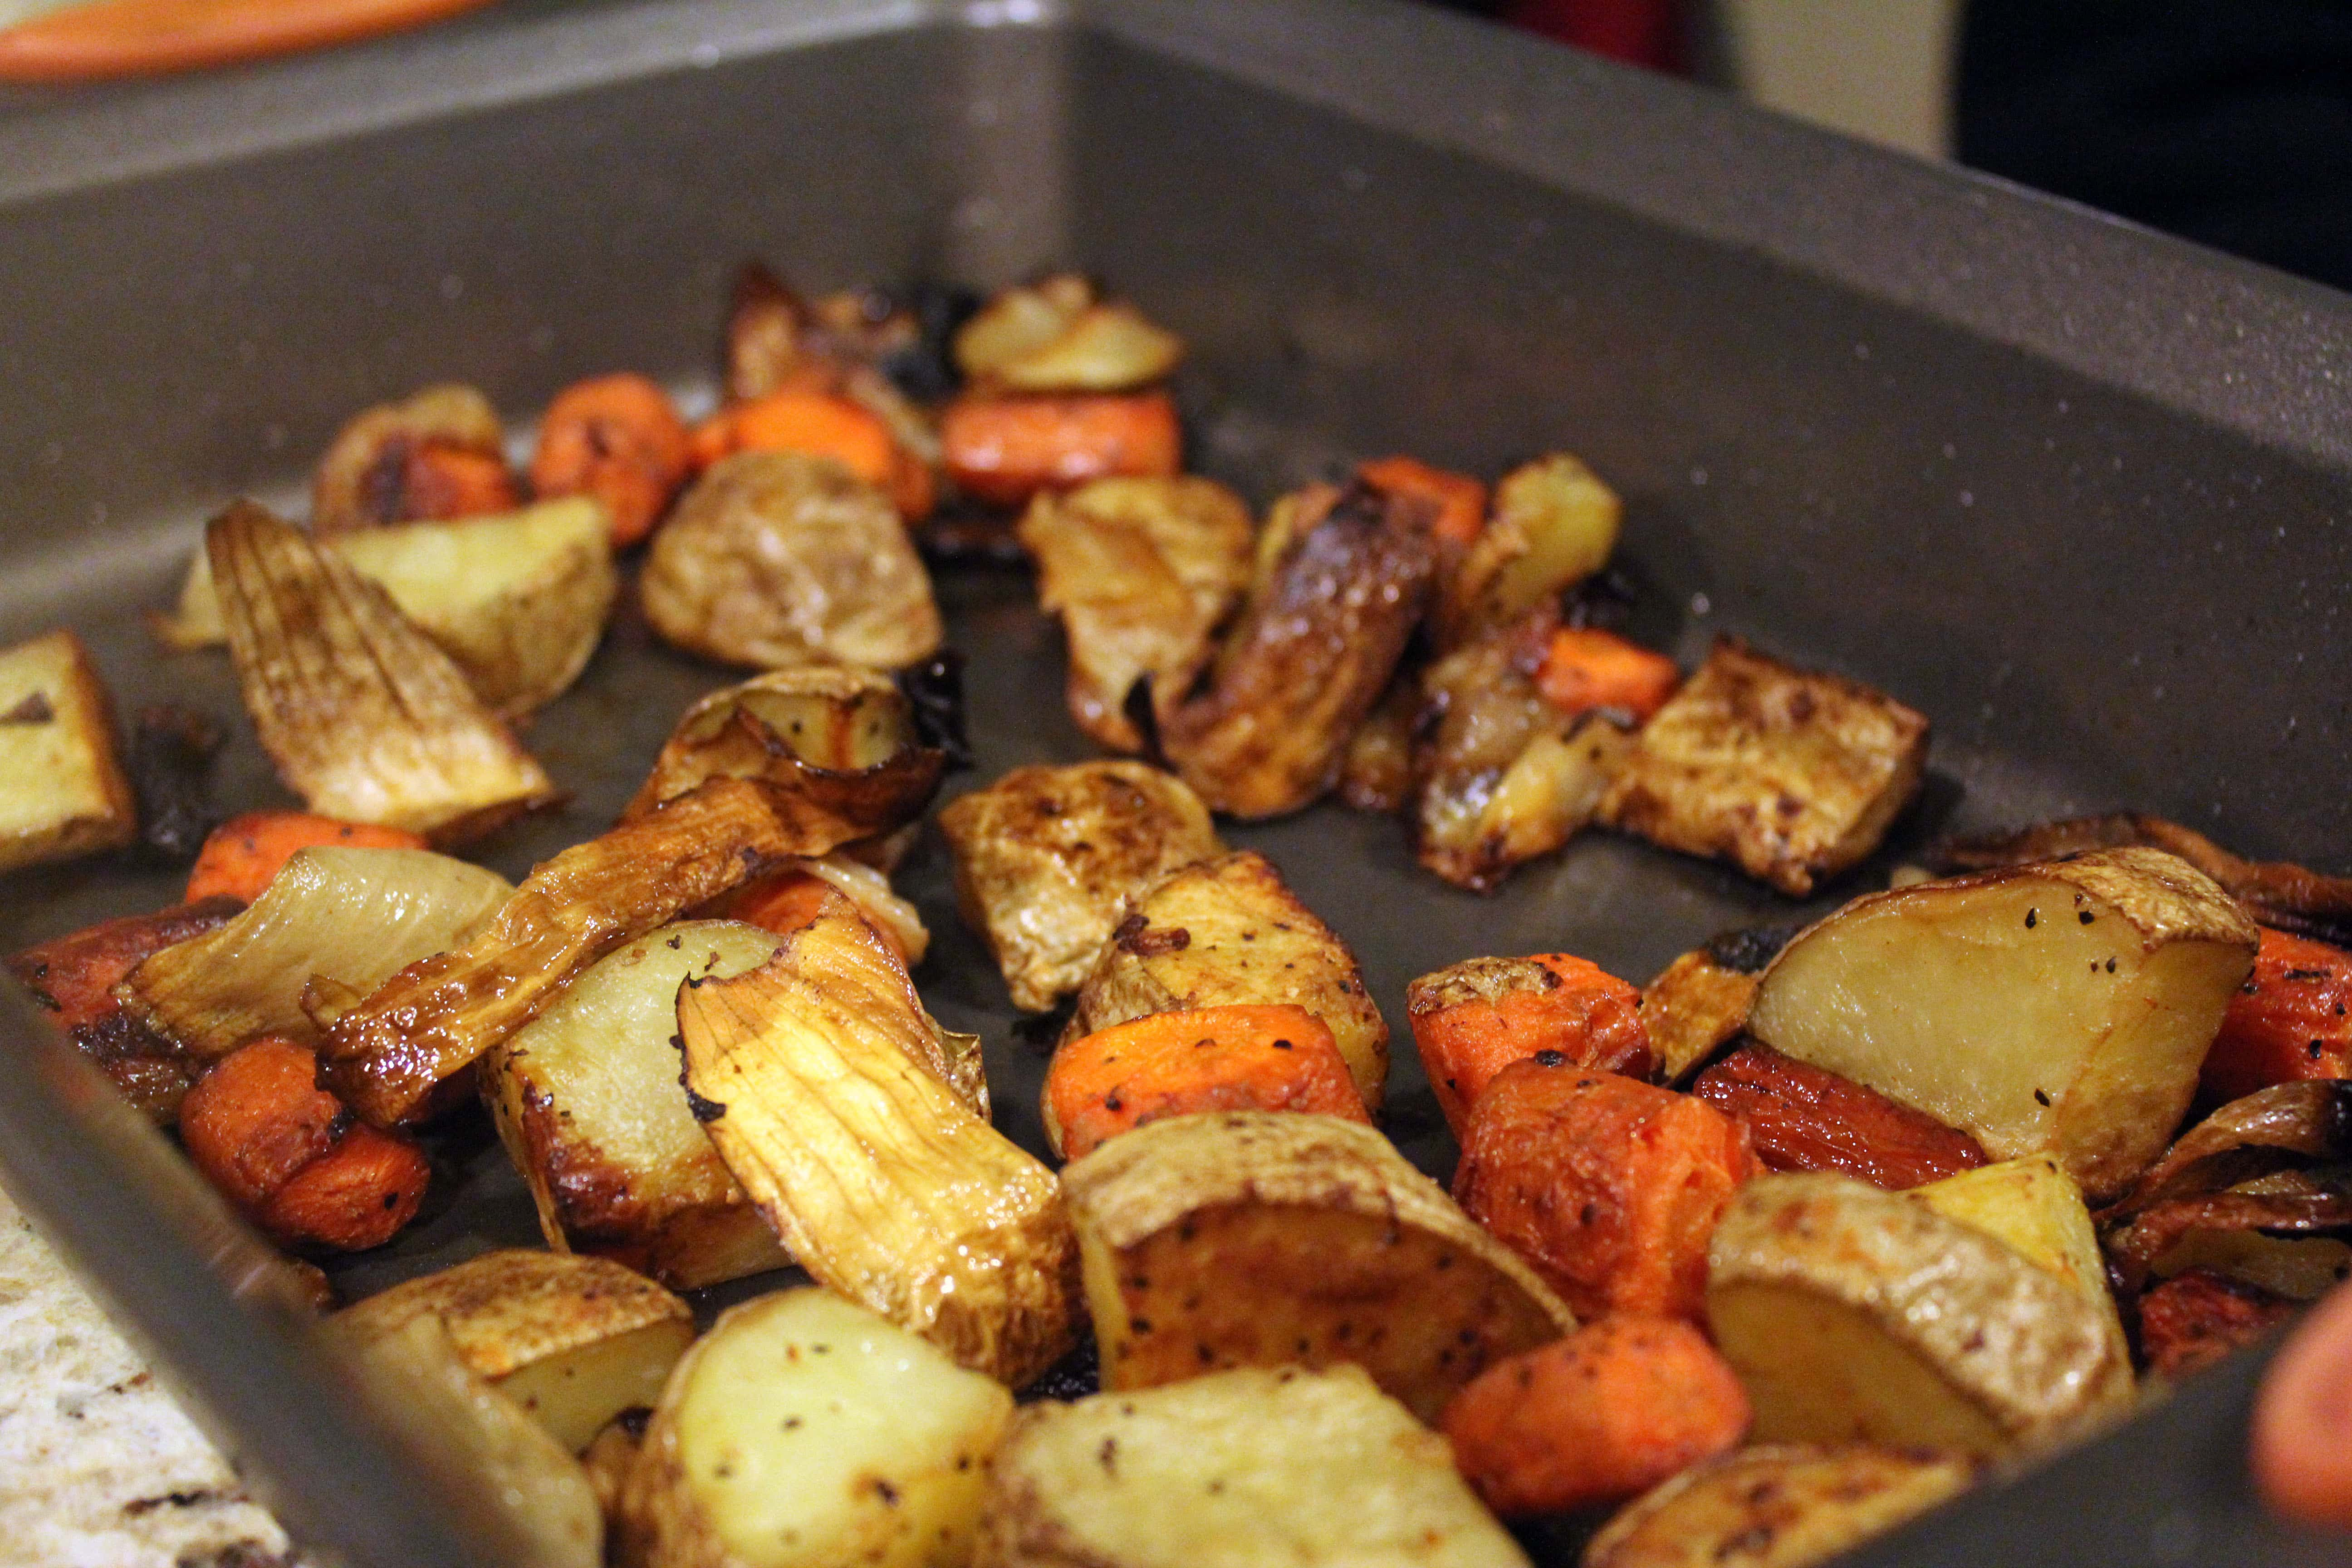 Roast veggies until tender